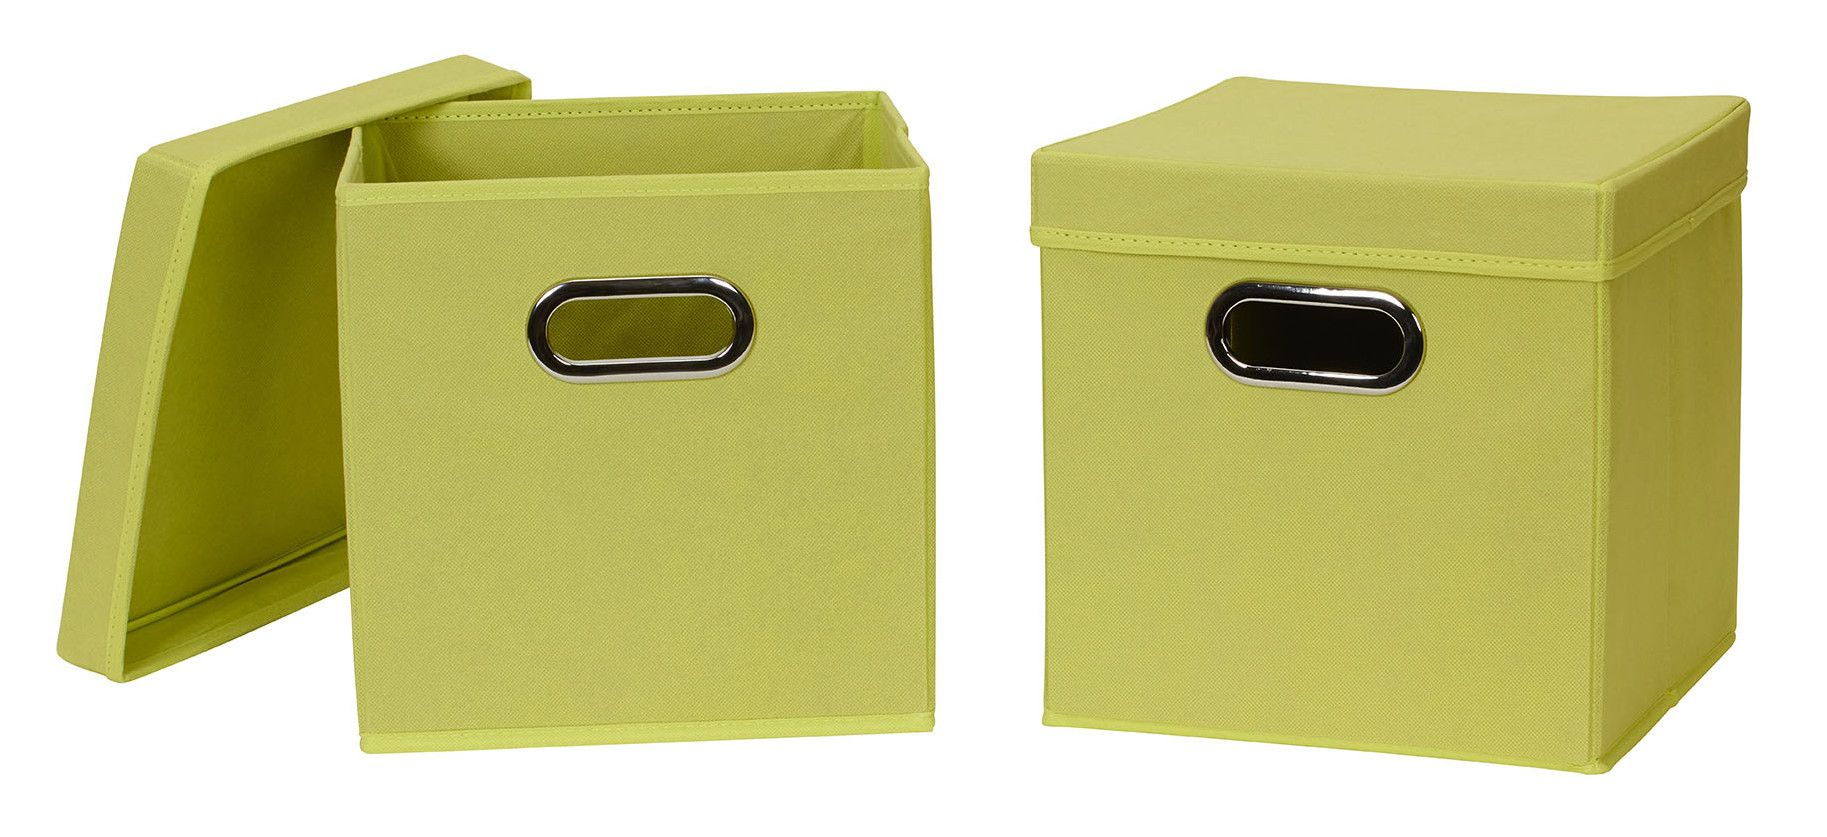 Collapsible Fabric Storage Cube with Lid